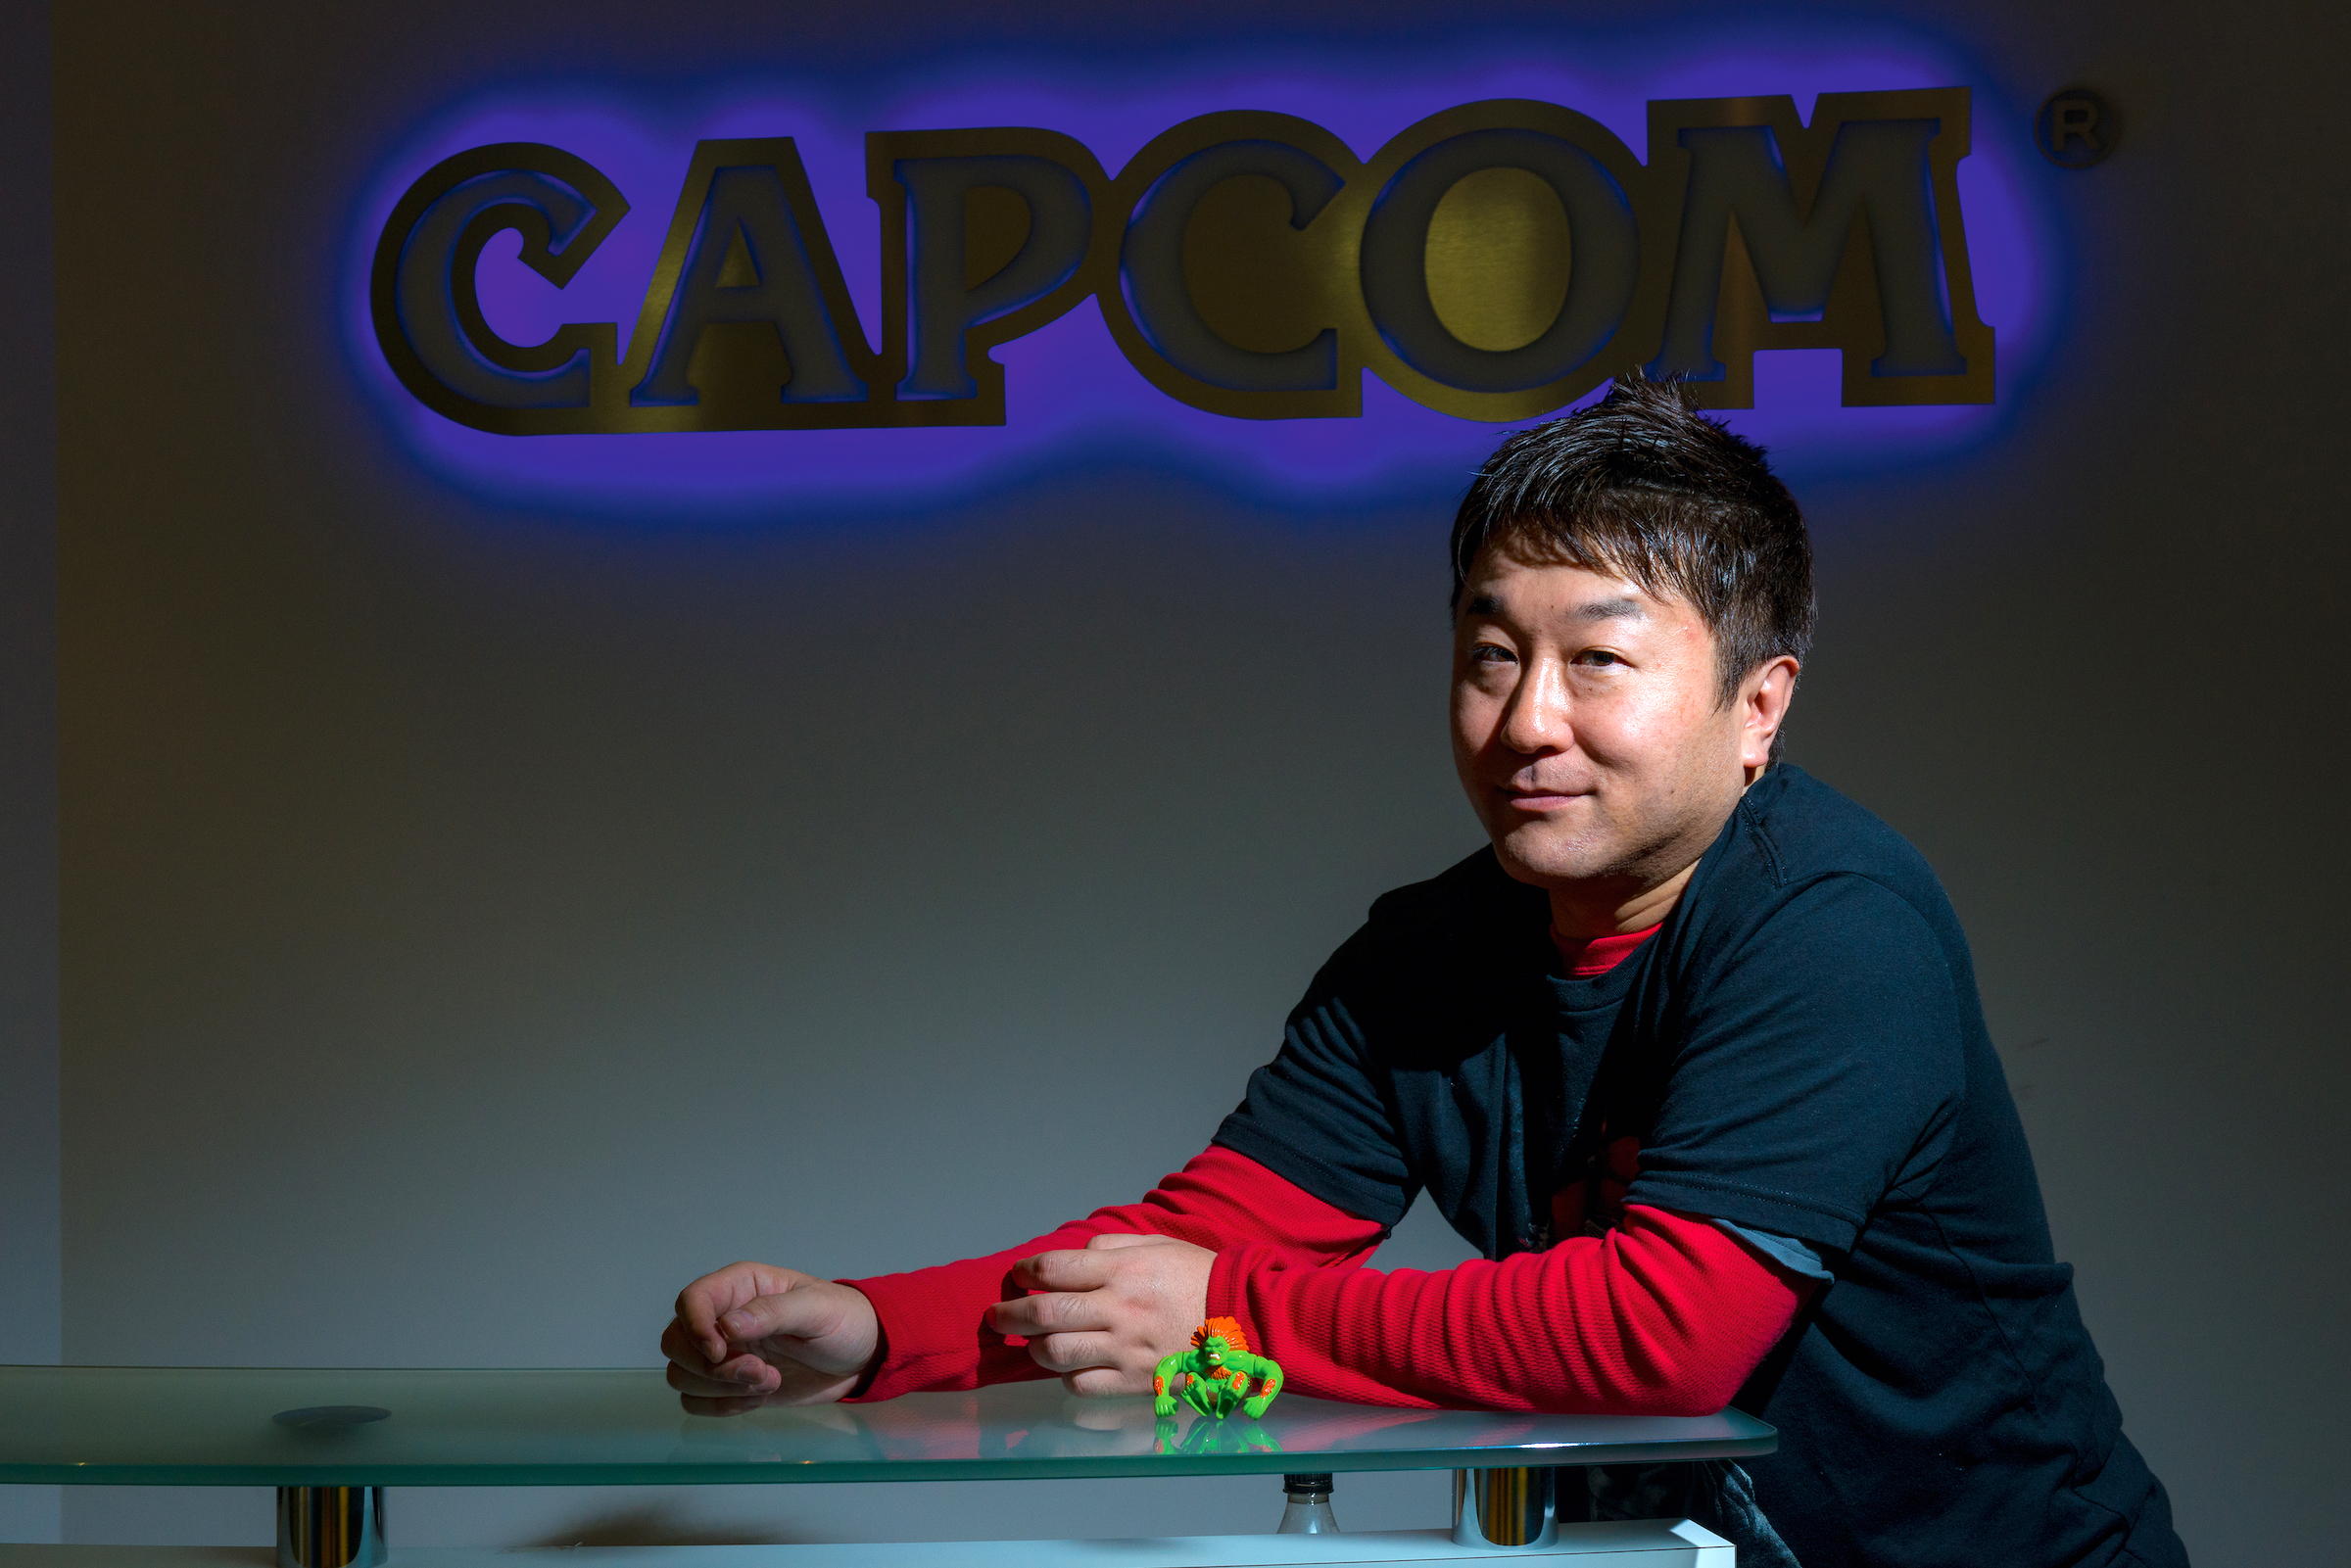 Ex-Capcom producer and brand manager Yoshinori Ono sits at a table with a Blanka figure, with the Capcom logo behind him